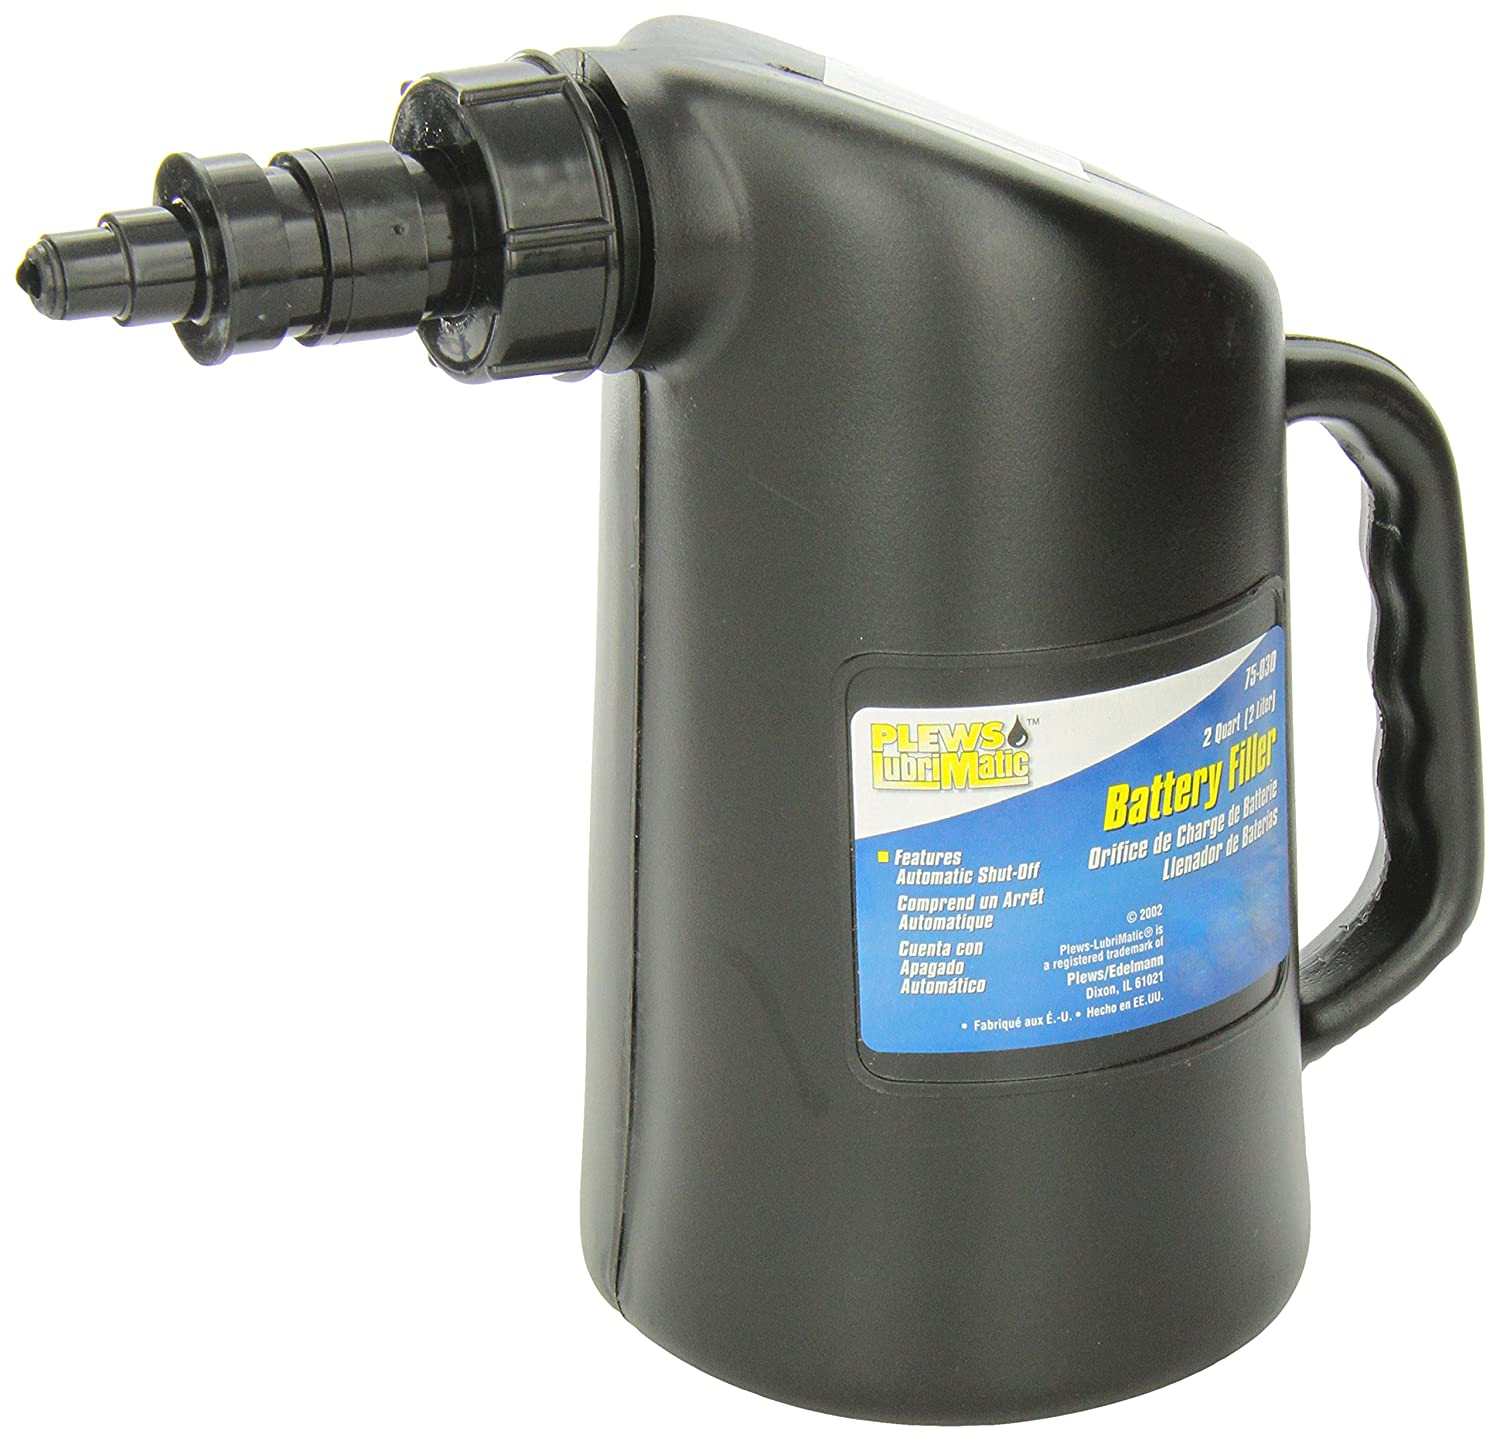 LubriMatic 75-030 2 Quart Professional Battery Filler with Automatic Shut Off